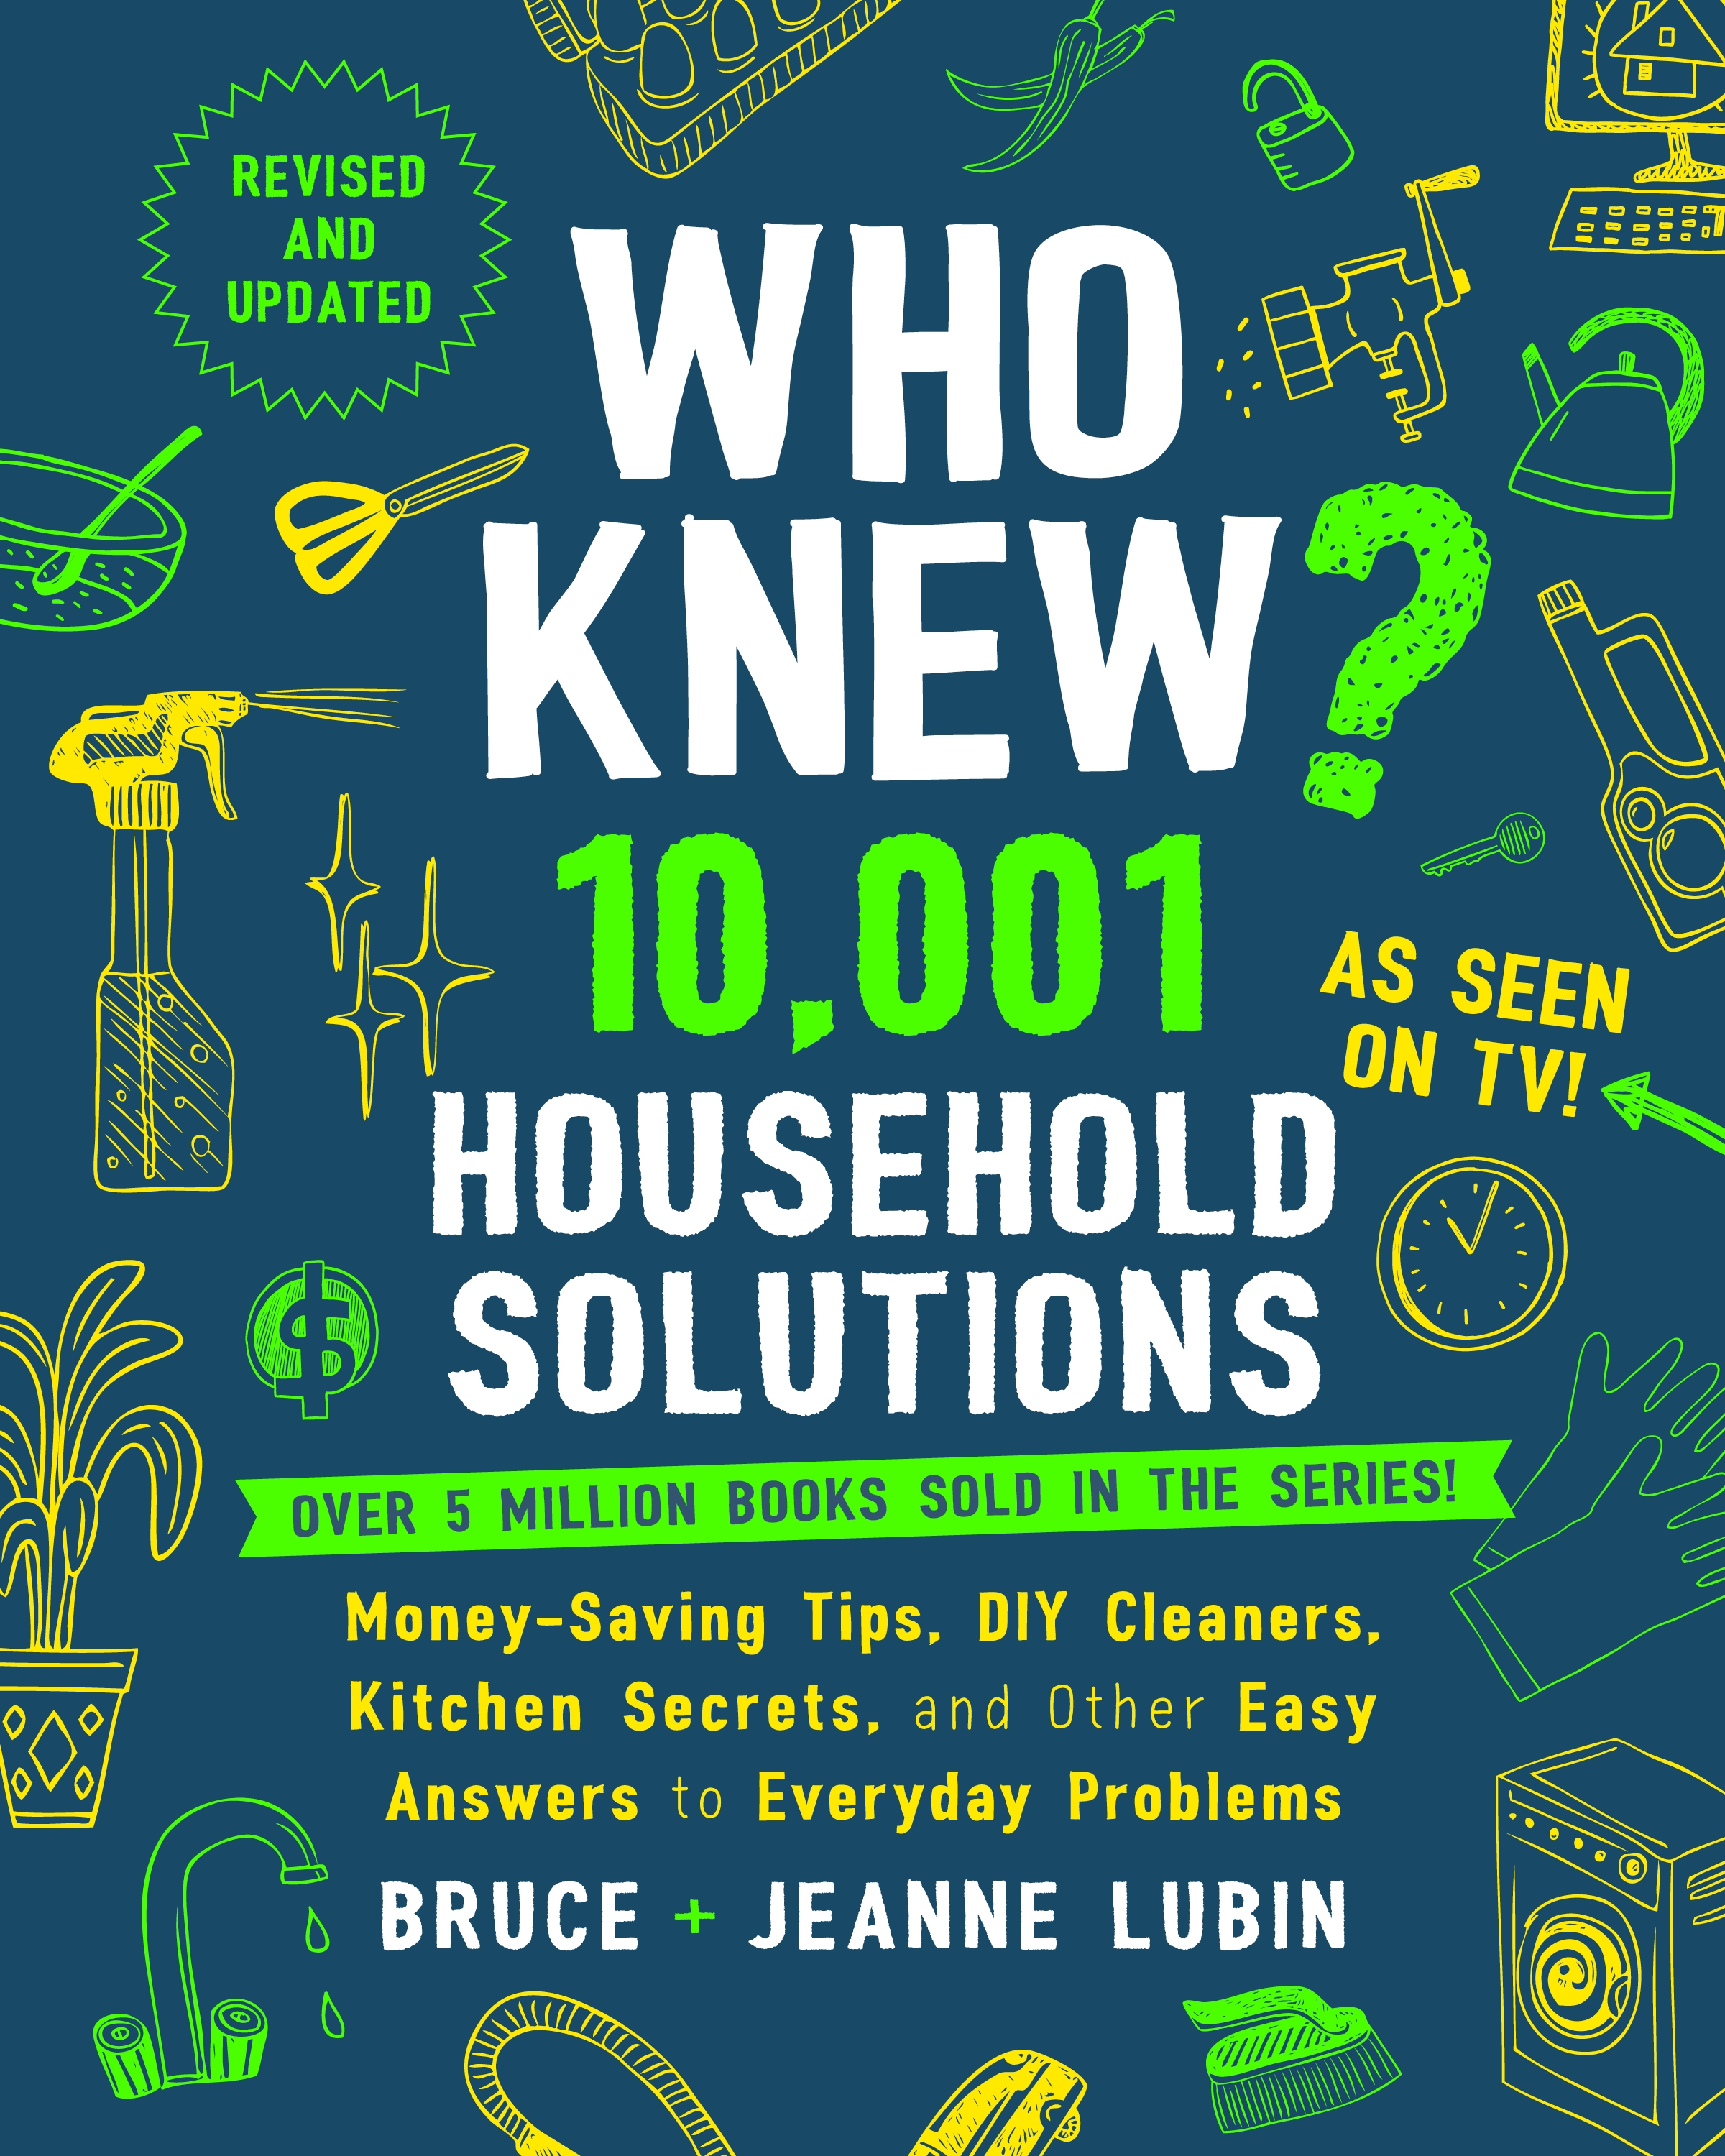 Who Knew? 10,001 Household Solutions Money-Saving Tips, DIY Cleaners, Kitchen Secrets, and Other Easy Answers to Everyday Problems